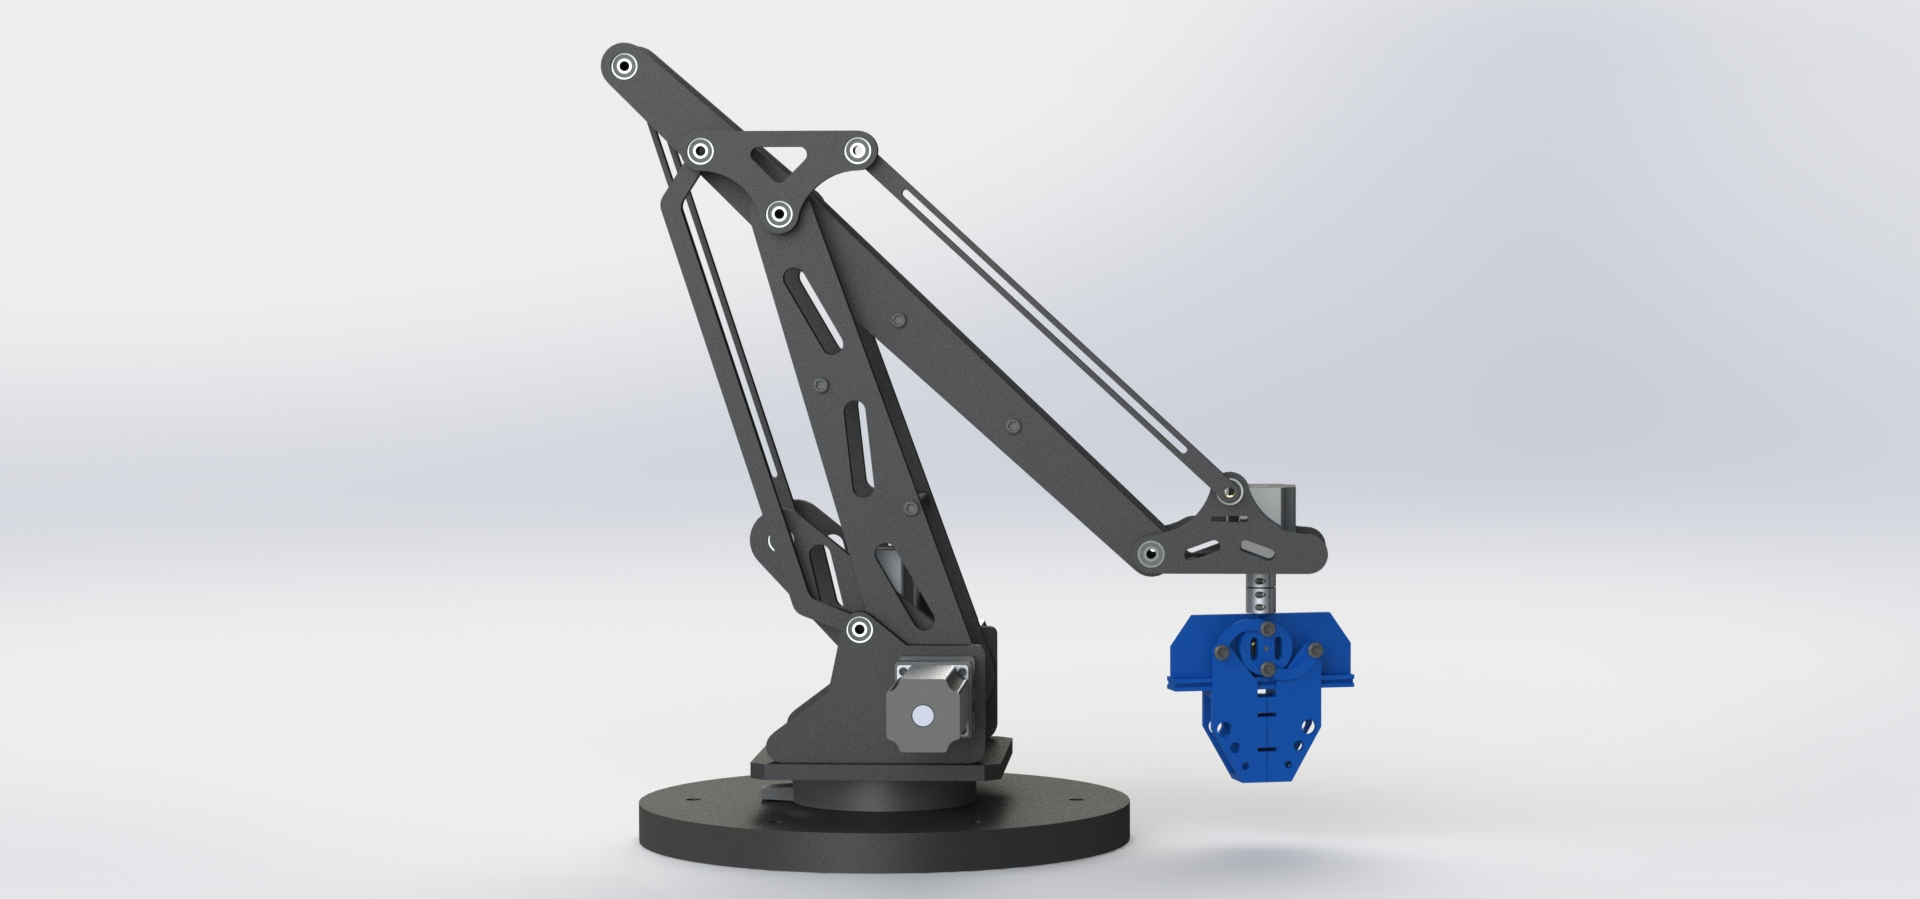 robotic arm 4.JPG